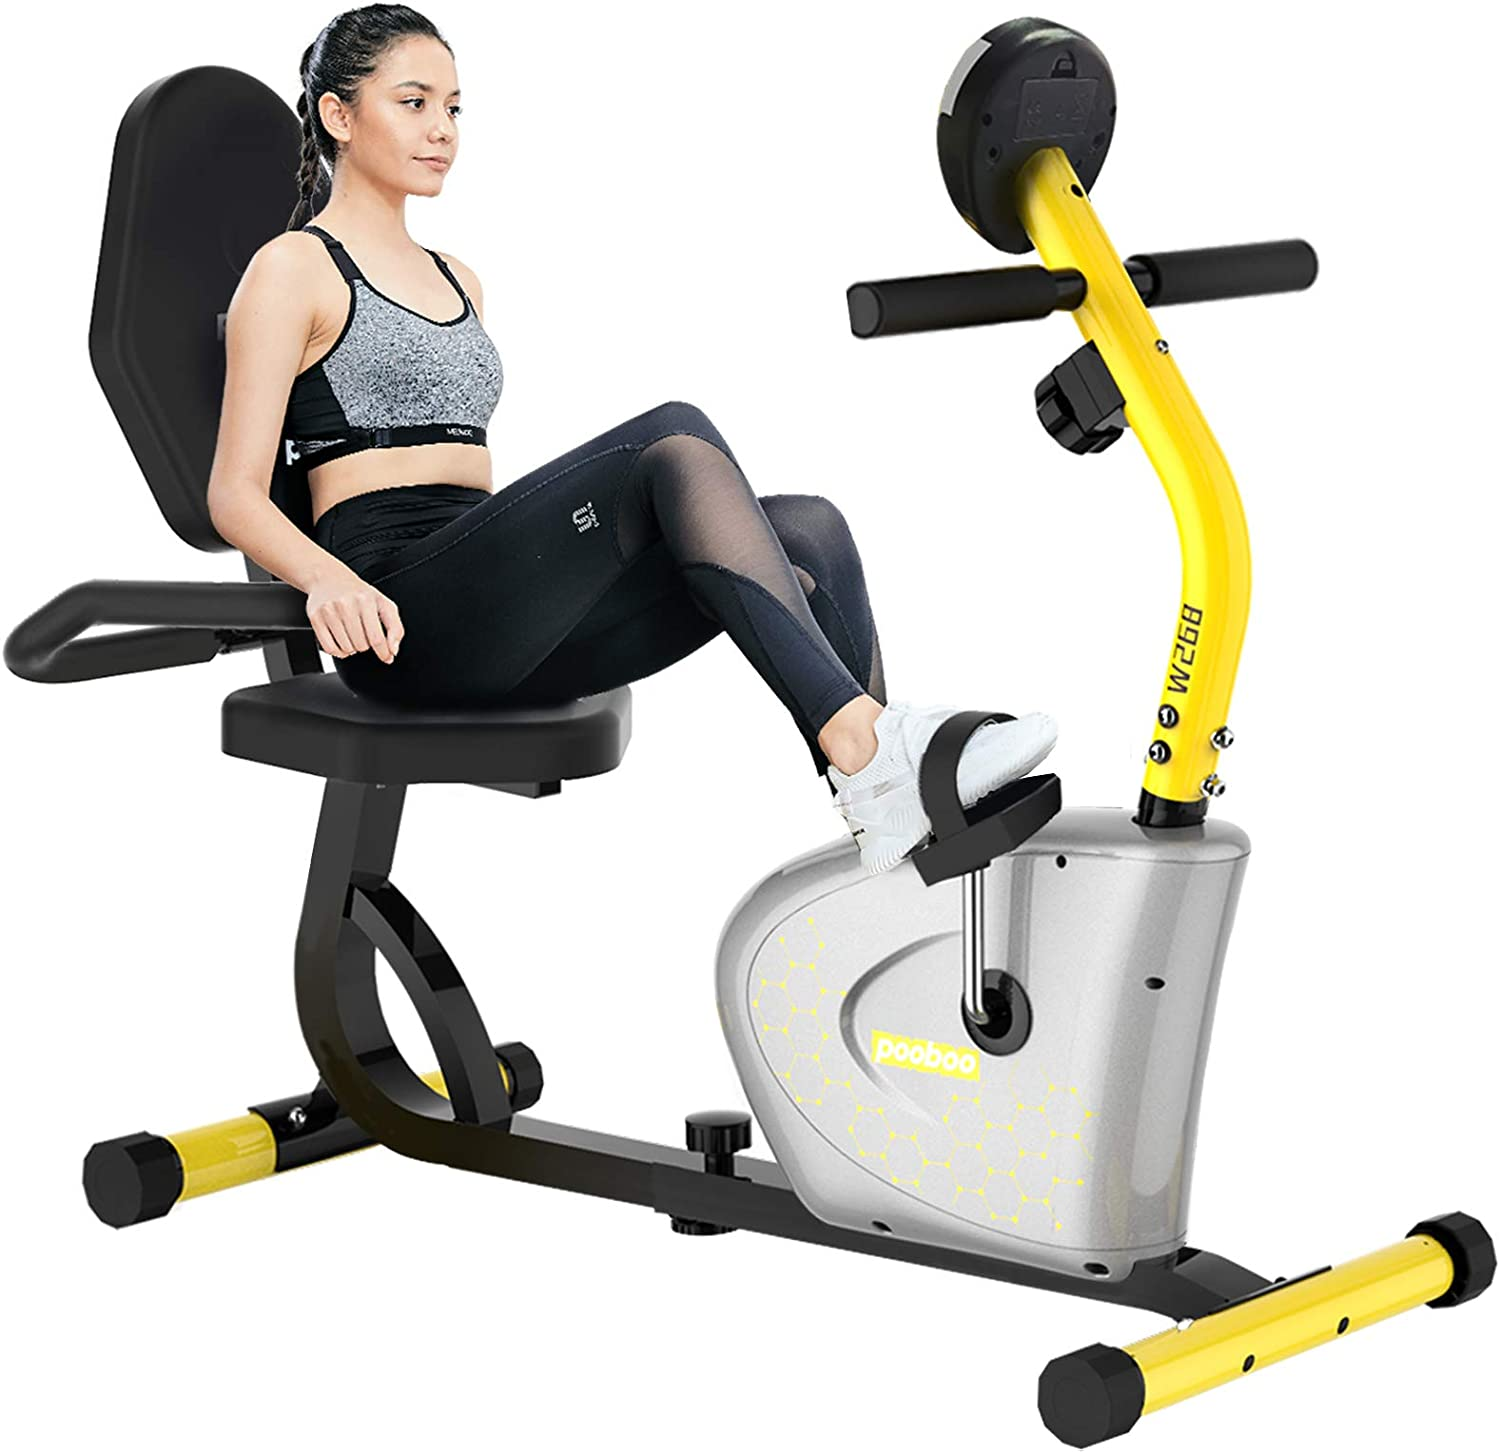 cycool Recumbent Exercise Bike, Magnetic Indoor Cycling Bike Stationary Bikes with Adjsutable Resistance and LCD Display For Home Cardio Workout